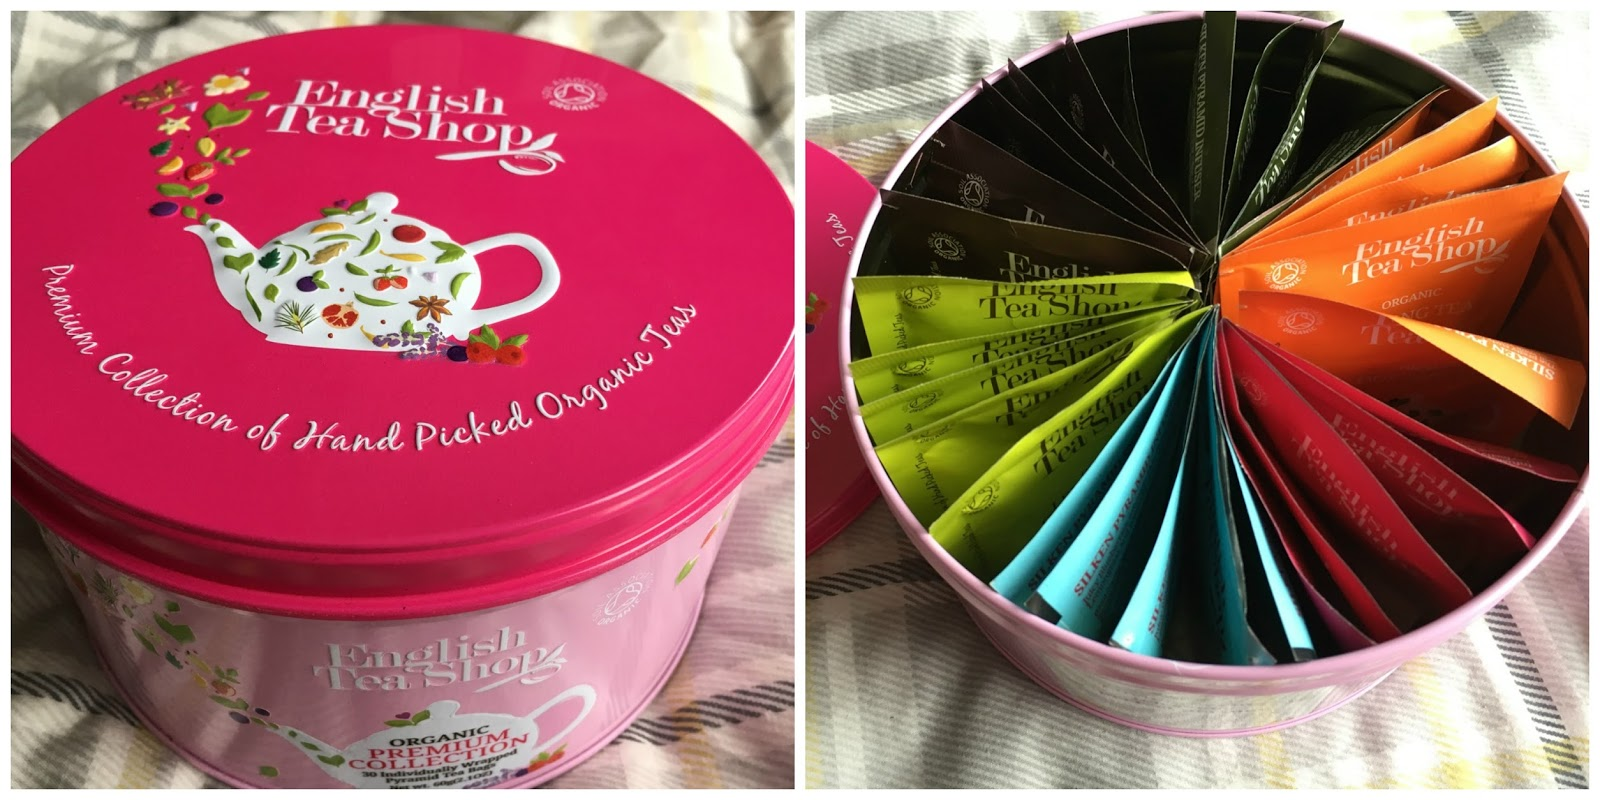 Mesmerizing Raising The Rainbows Mothers Day Gift Guide With Fair I Adore Flavoured Teas And Have Tried A Fair Few Of Them But English Tea  Shop Is A New Brand To Me I Love This Pretty Floral Tin And It Contains    With Astonishing Watering Systems For Gardens Also Garden Centre Derby In Addition Metal Garden Fence Panels And Best Garden Centres North West As Well As Garden Centre Staffordshire Additionally Toddler Gardening Gloves From Raisingtherainbowscouk With   Fair Raising The Rainbows Mothers Day Gift Guide With Astonishing I Adore Flavoured Teas And Have Tried A Fair Few Of Them But English Tea  Shop Is A New Brand To Me I Love This Pretty Floral Tin And It Contains    And Mesmerizing Watering Systems For Gardens Also Garden Centre Derby In Addition Metal Garden Fence Panels From Raisingtherainbowscouk